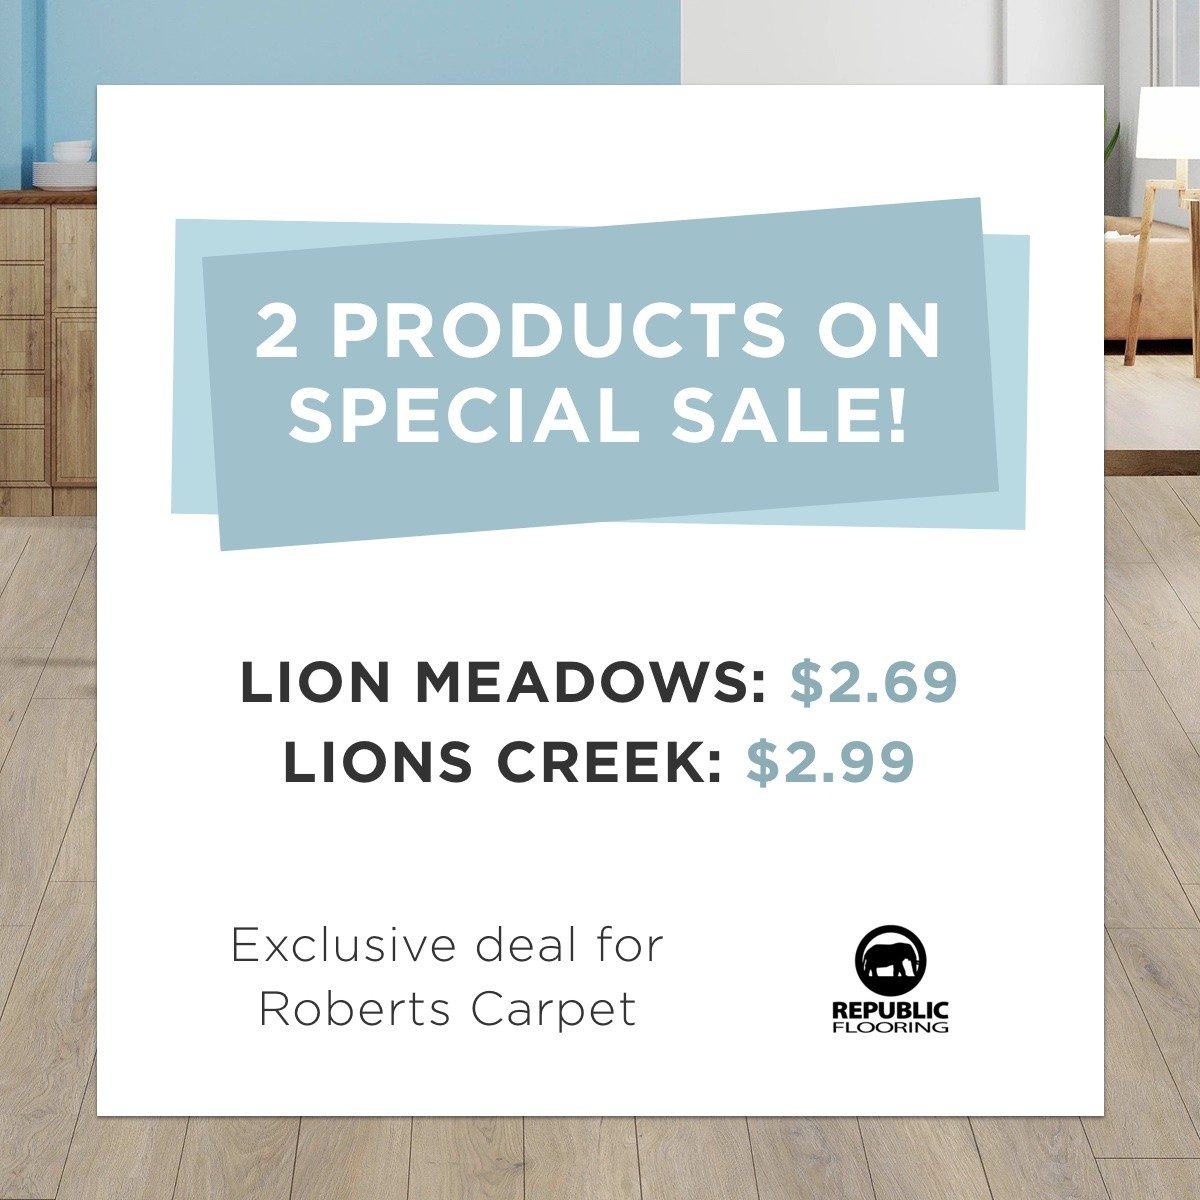 2 products on SPECIAL SALE! Lion Meadows: $2.69 Lions Creek: $2.99 - Exclusive deal for Roberts Carpet